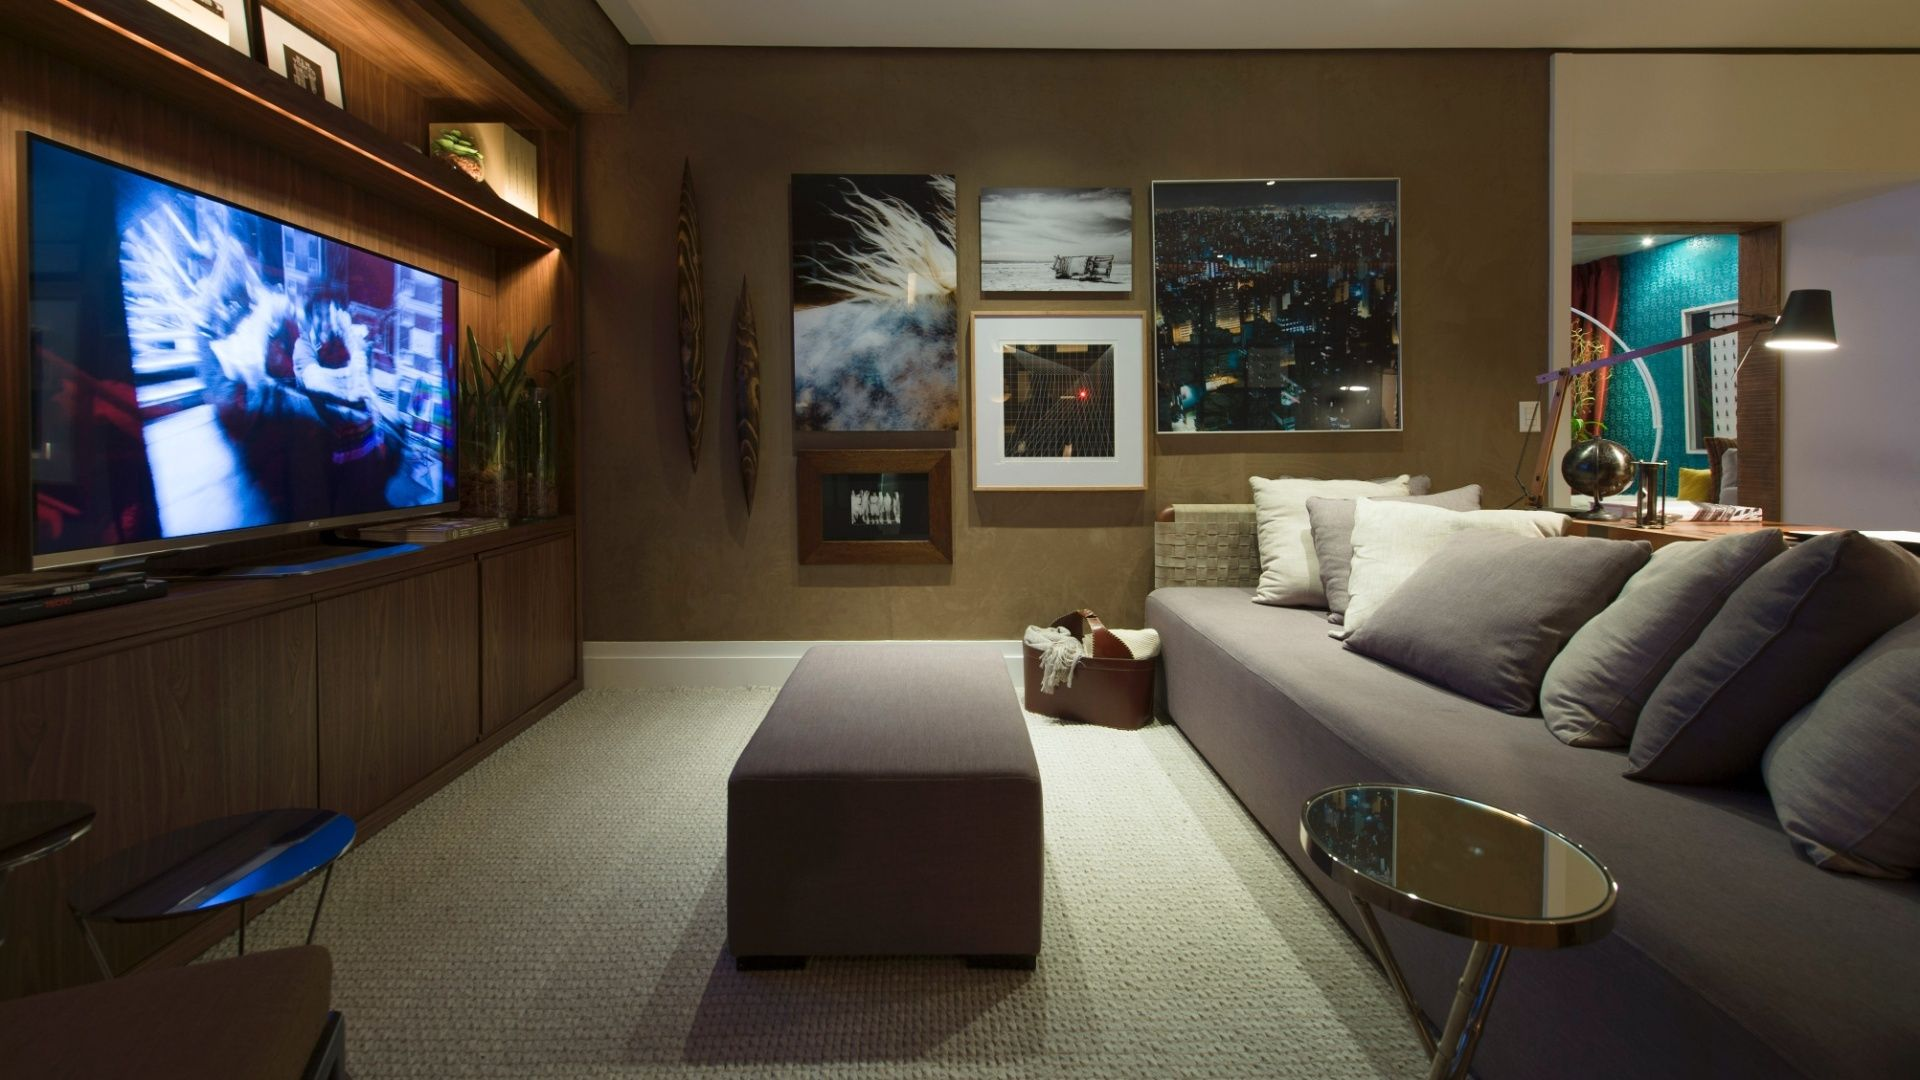 Sala De Tv Aconchegante ~ salas de home teather decoradas  Ricardo Barbosa  Pinterest  Search